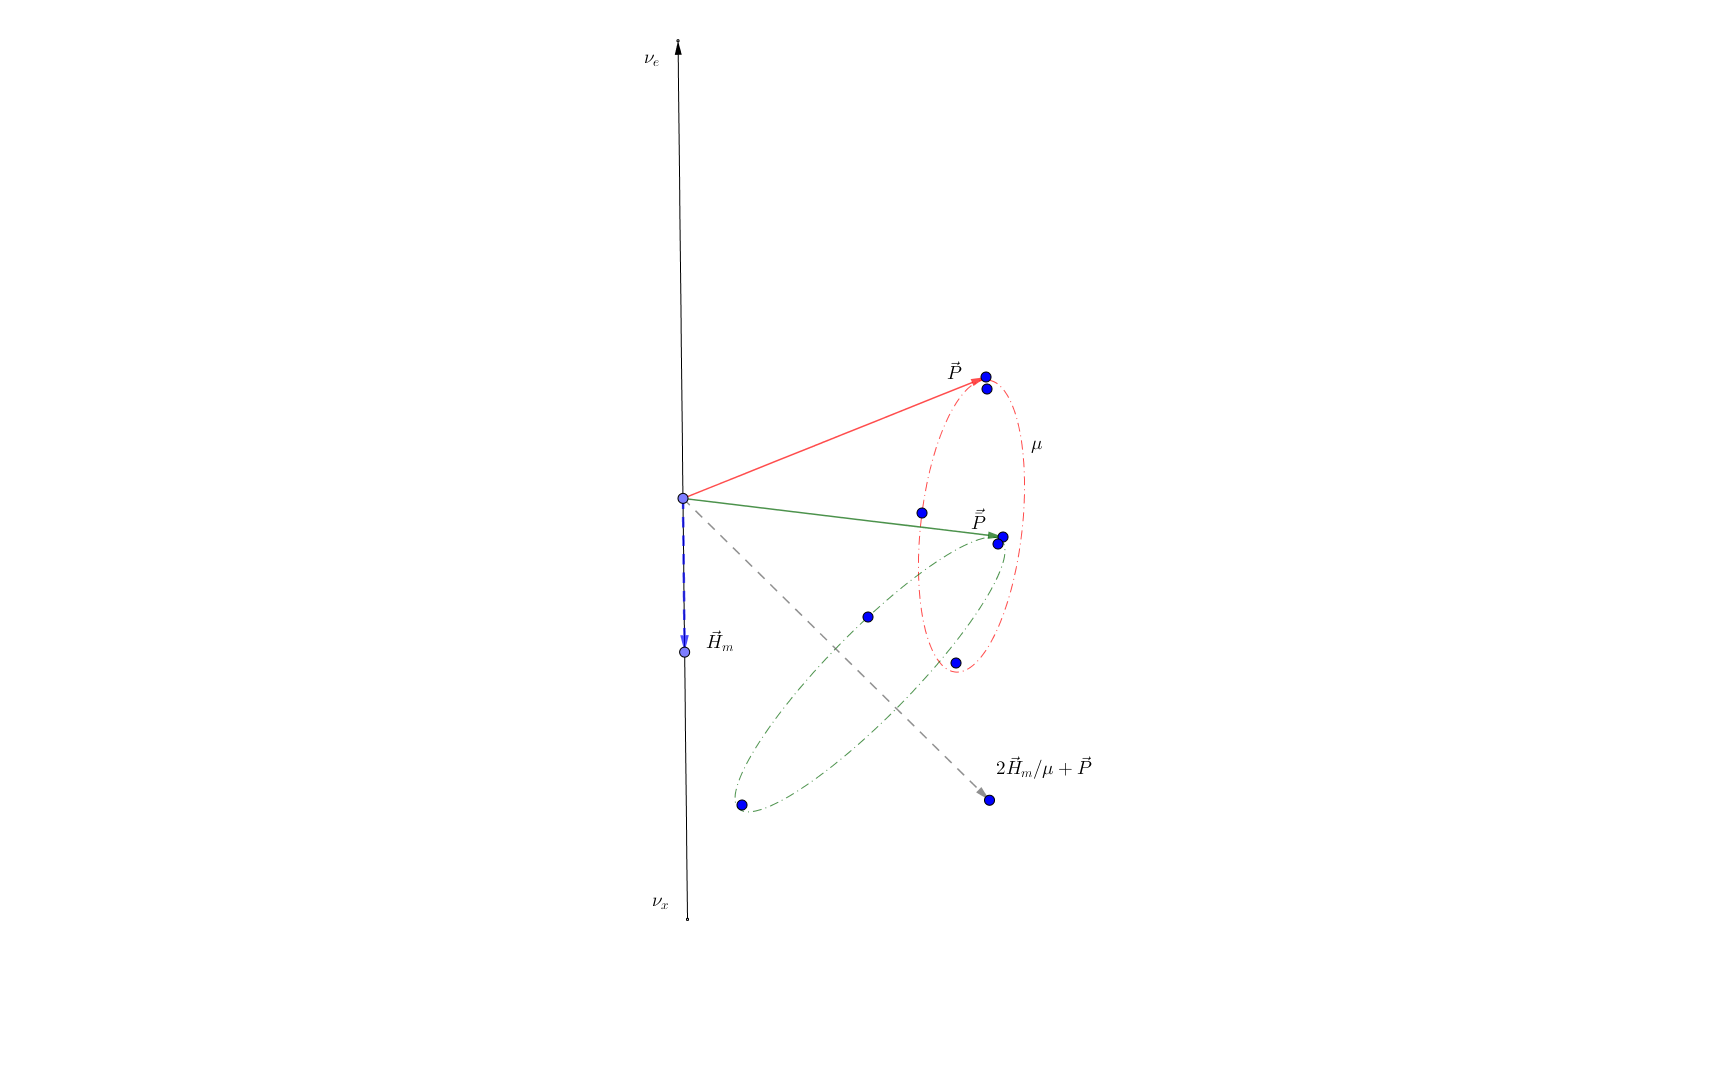 ../_images/flavor-isospin-selfinteractions.png